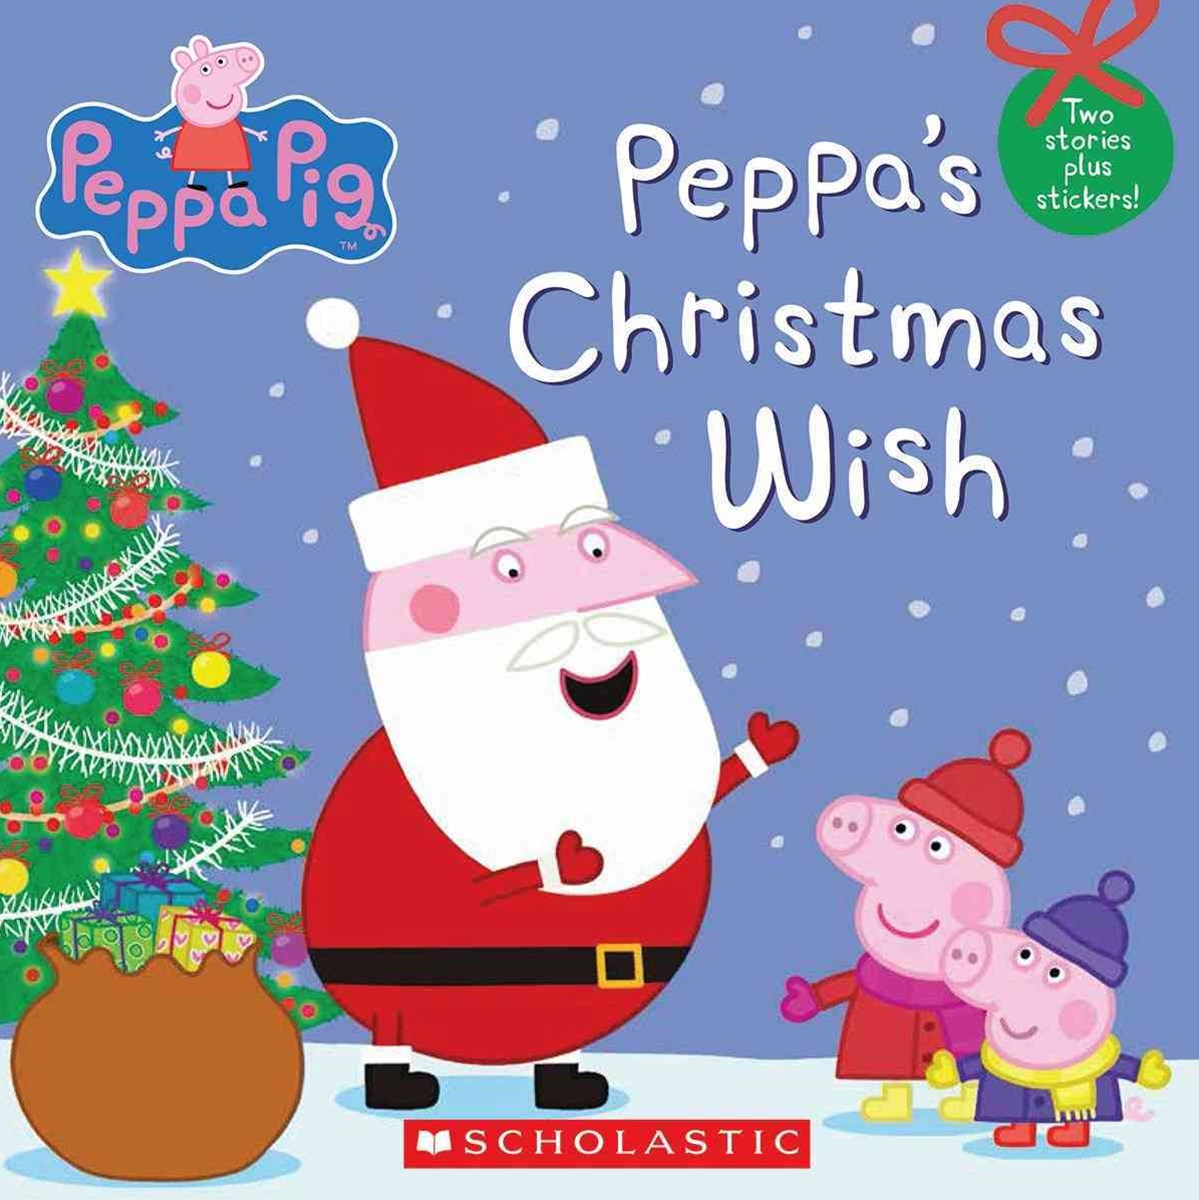 Peppa's Christmas Wish